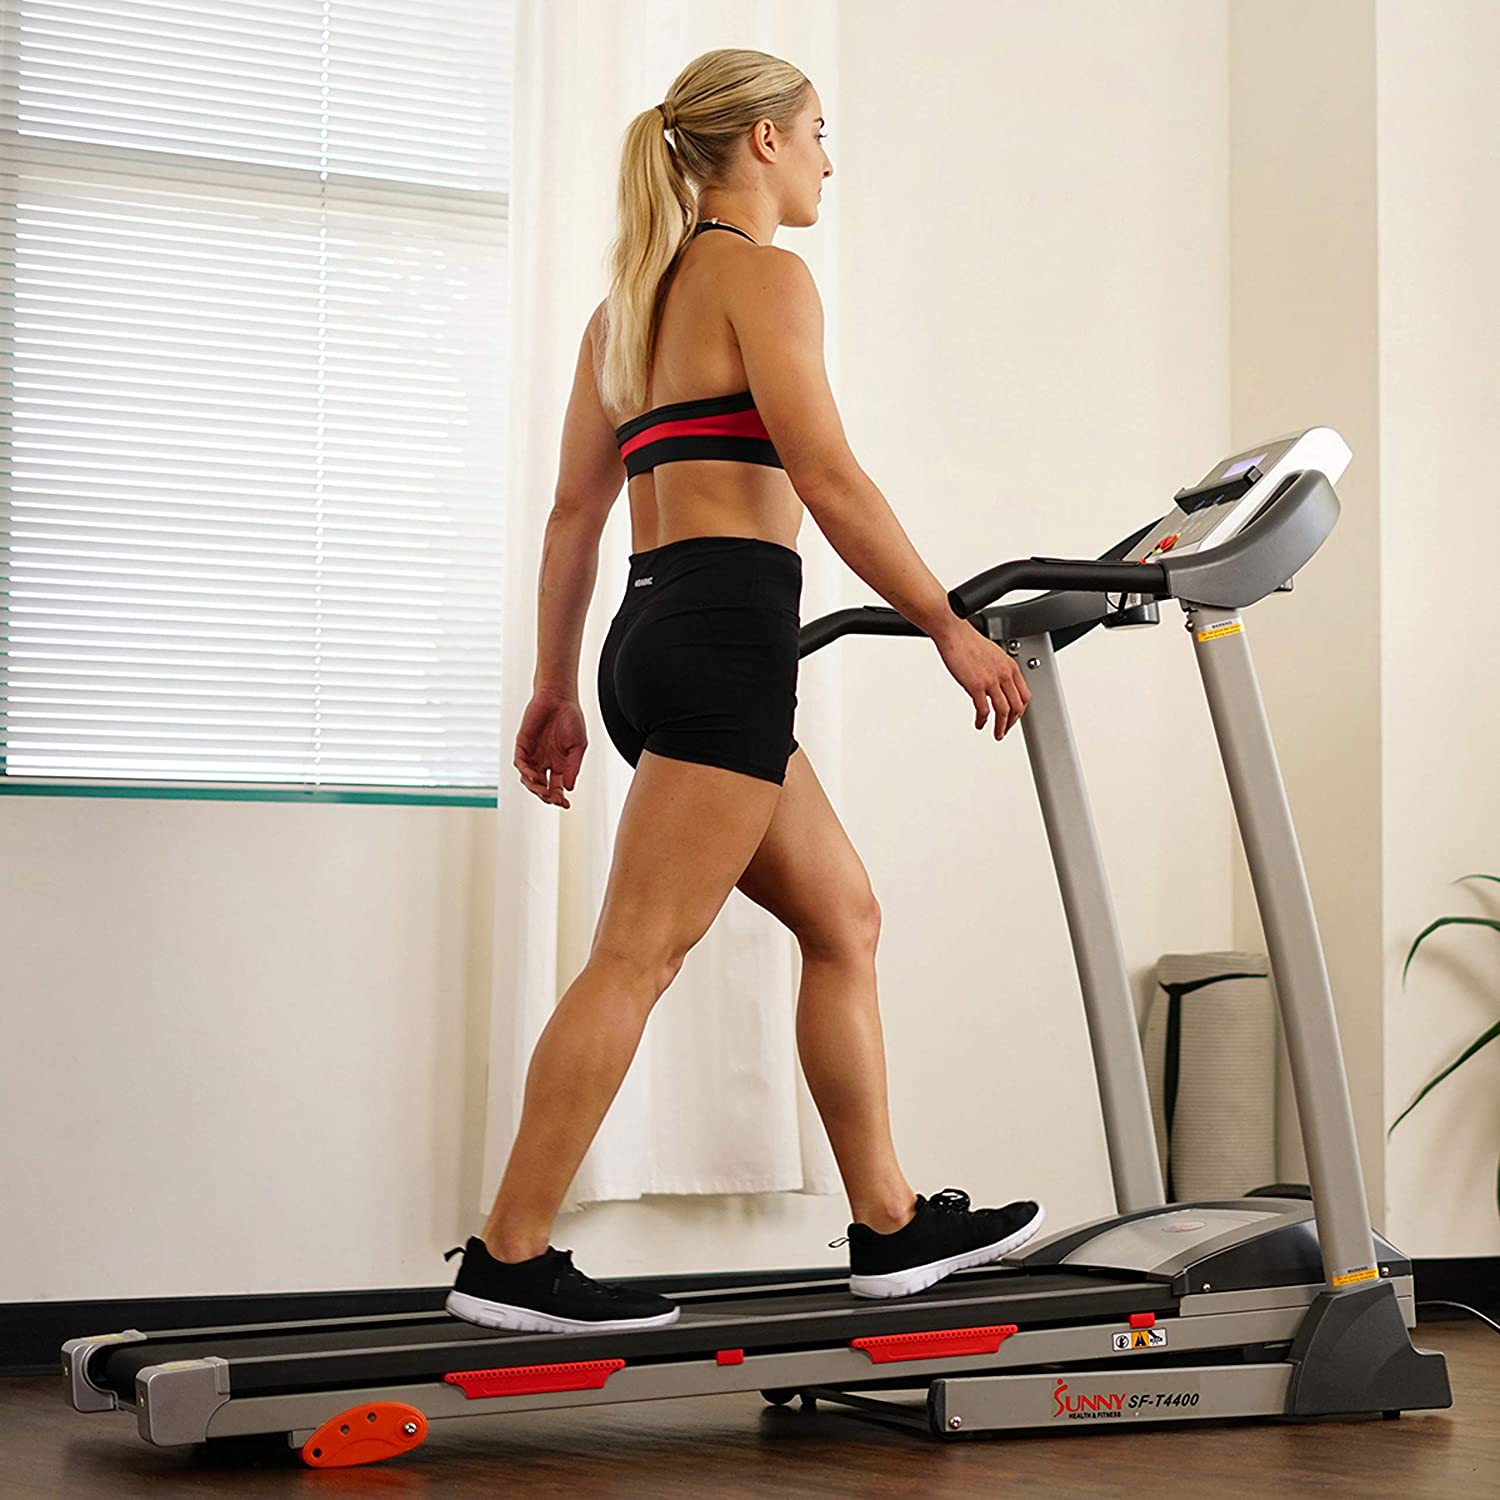 Top 10 Best Folding Treadmills for Home in 2020 Reviews & Buyer's Guide